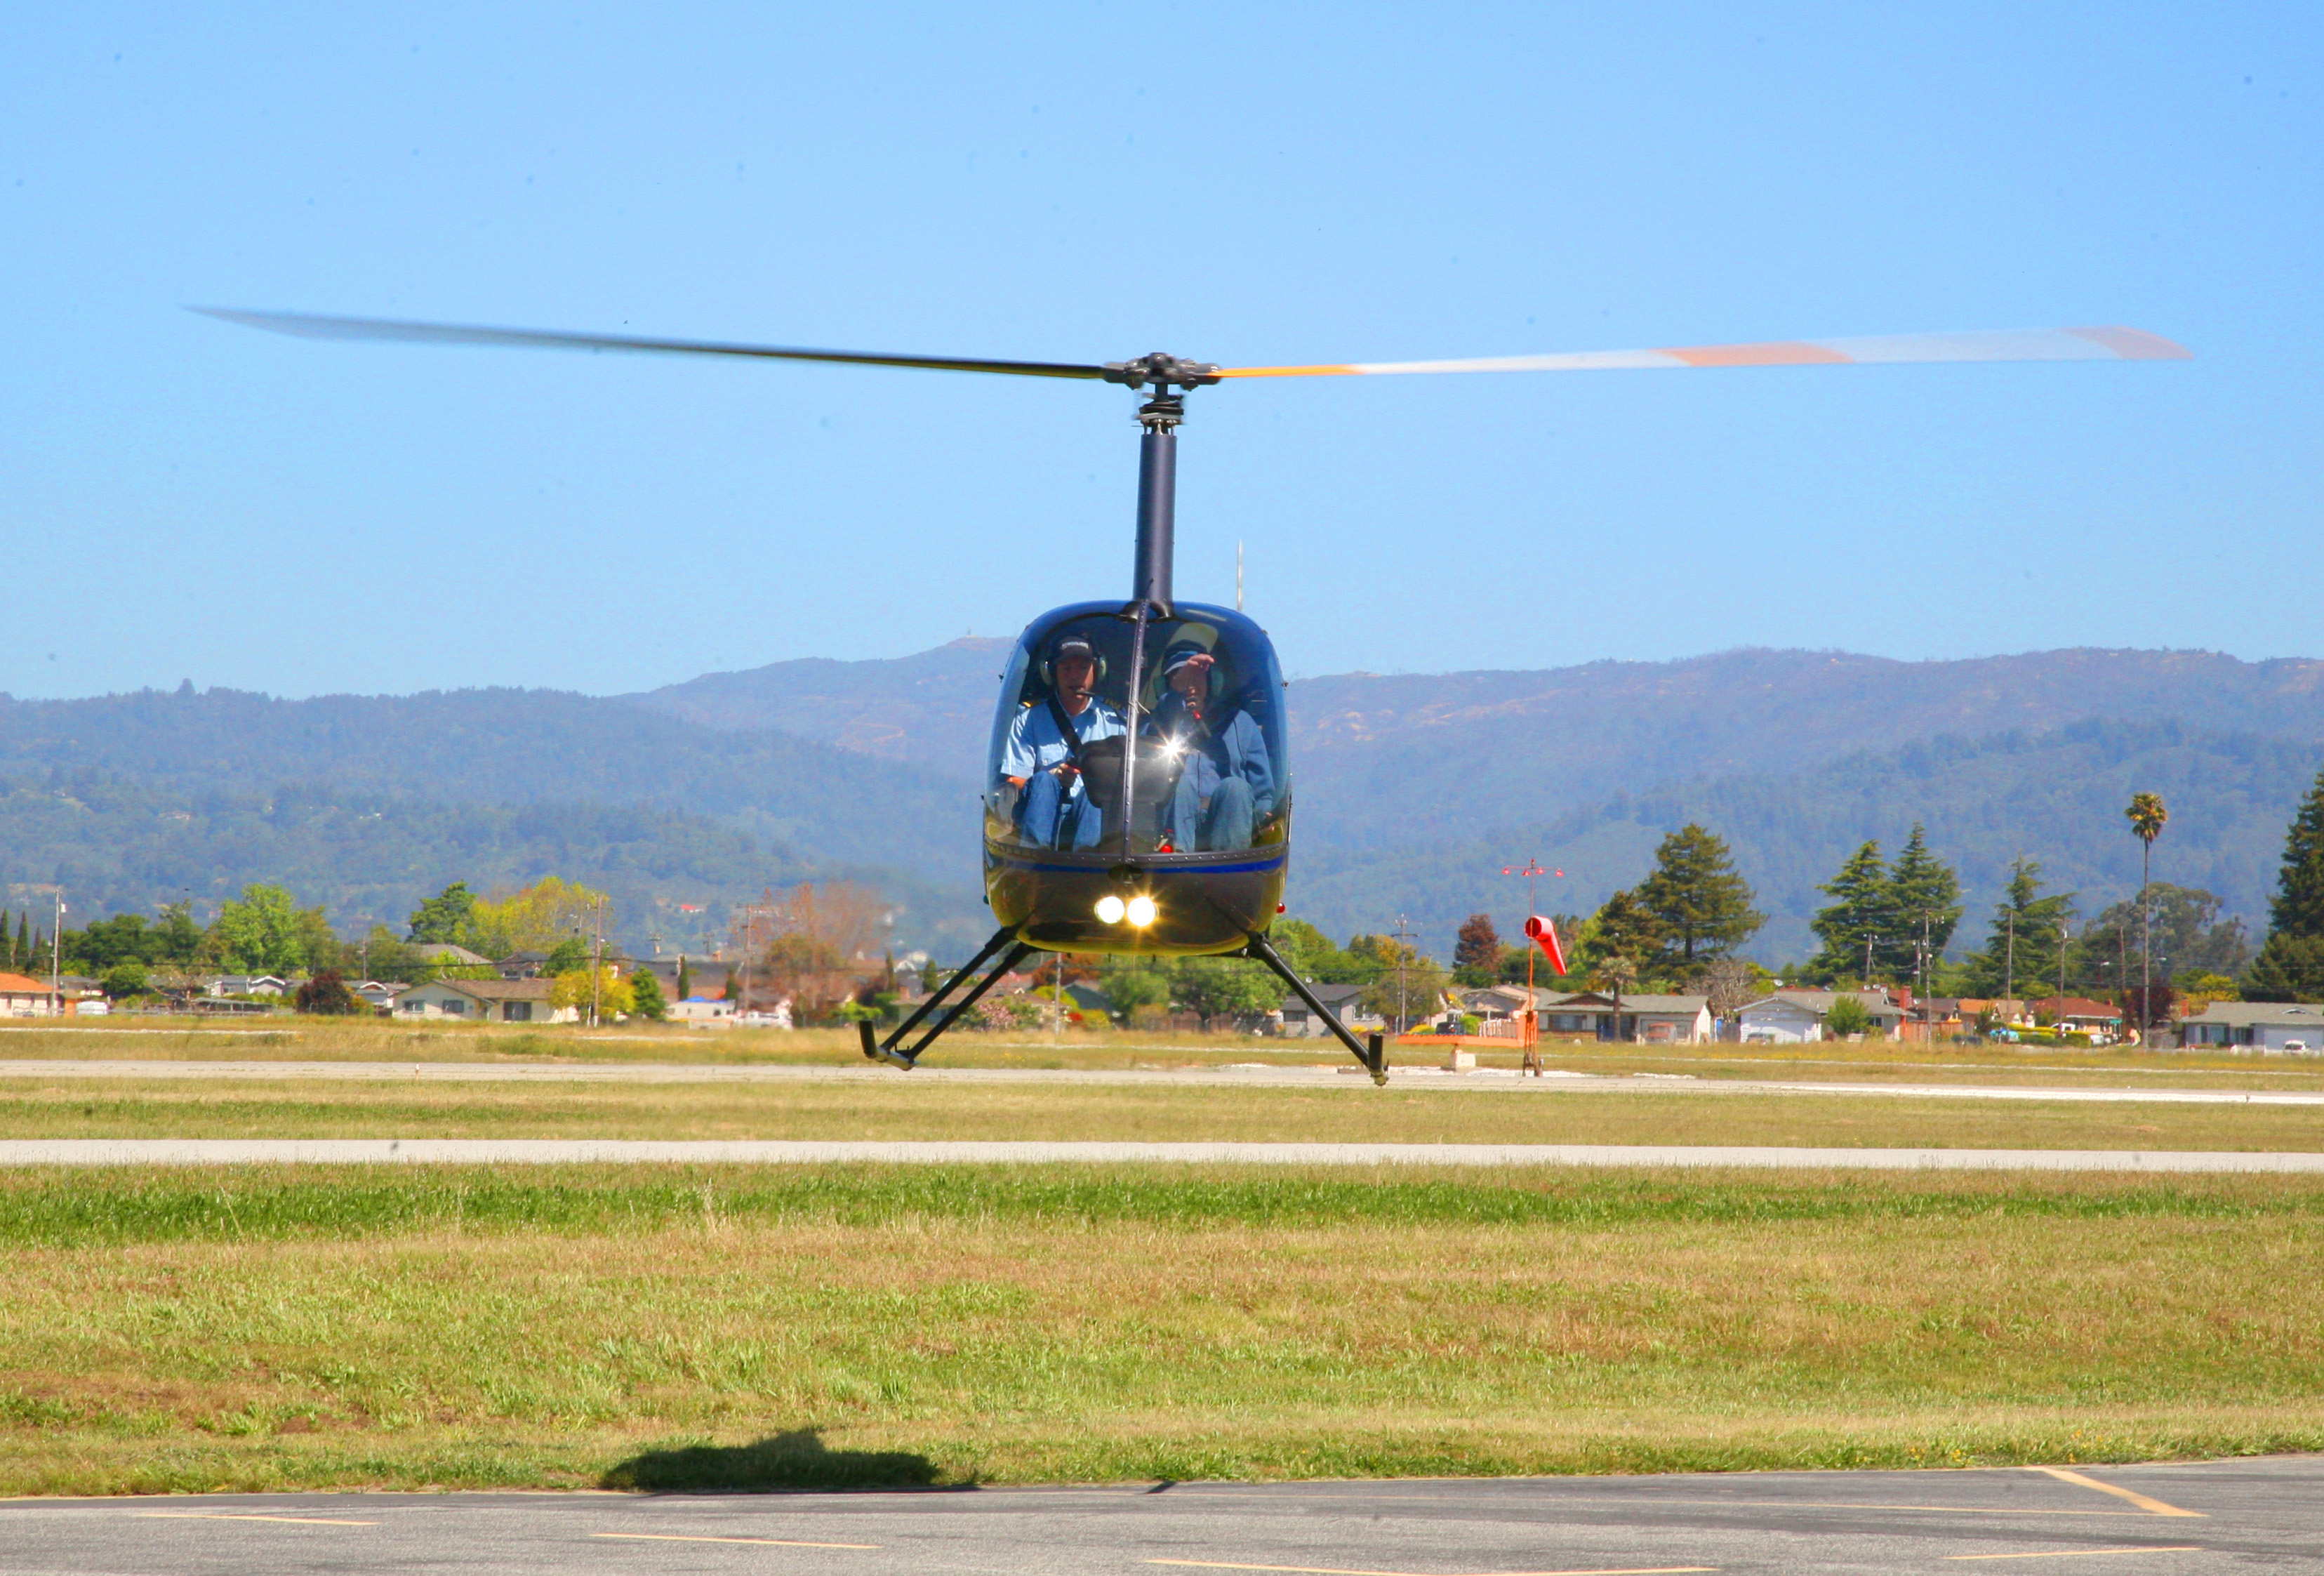 robinson_r22_helicopter_hovering.jpg